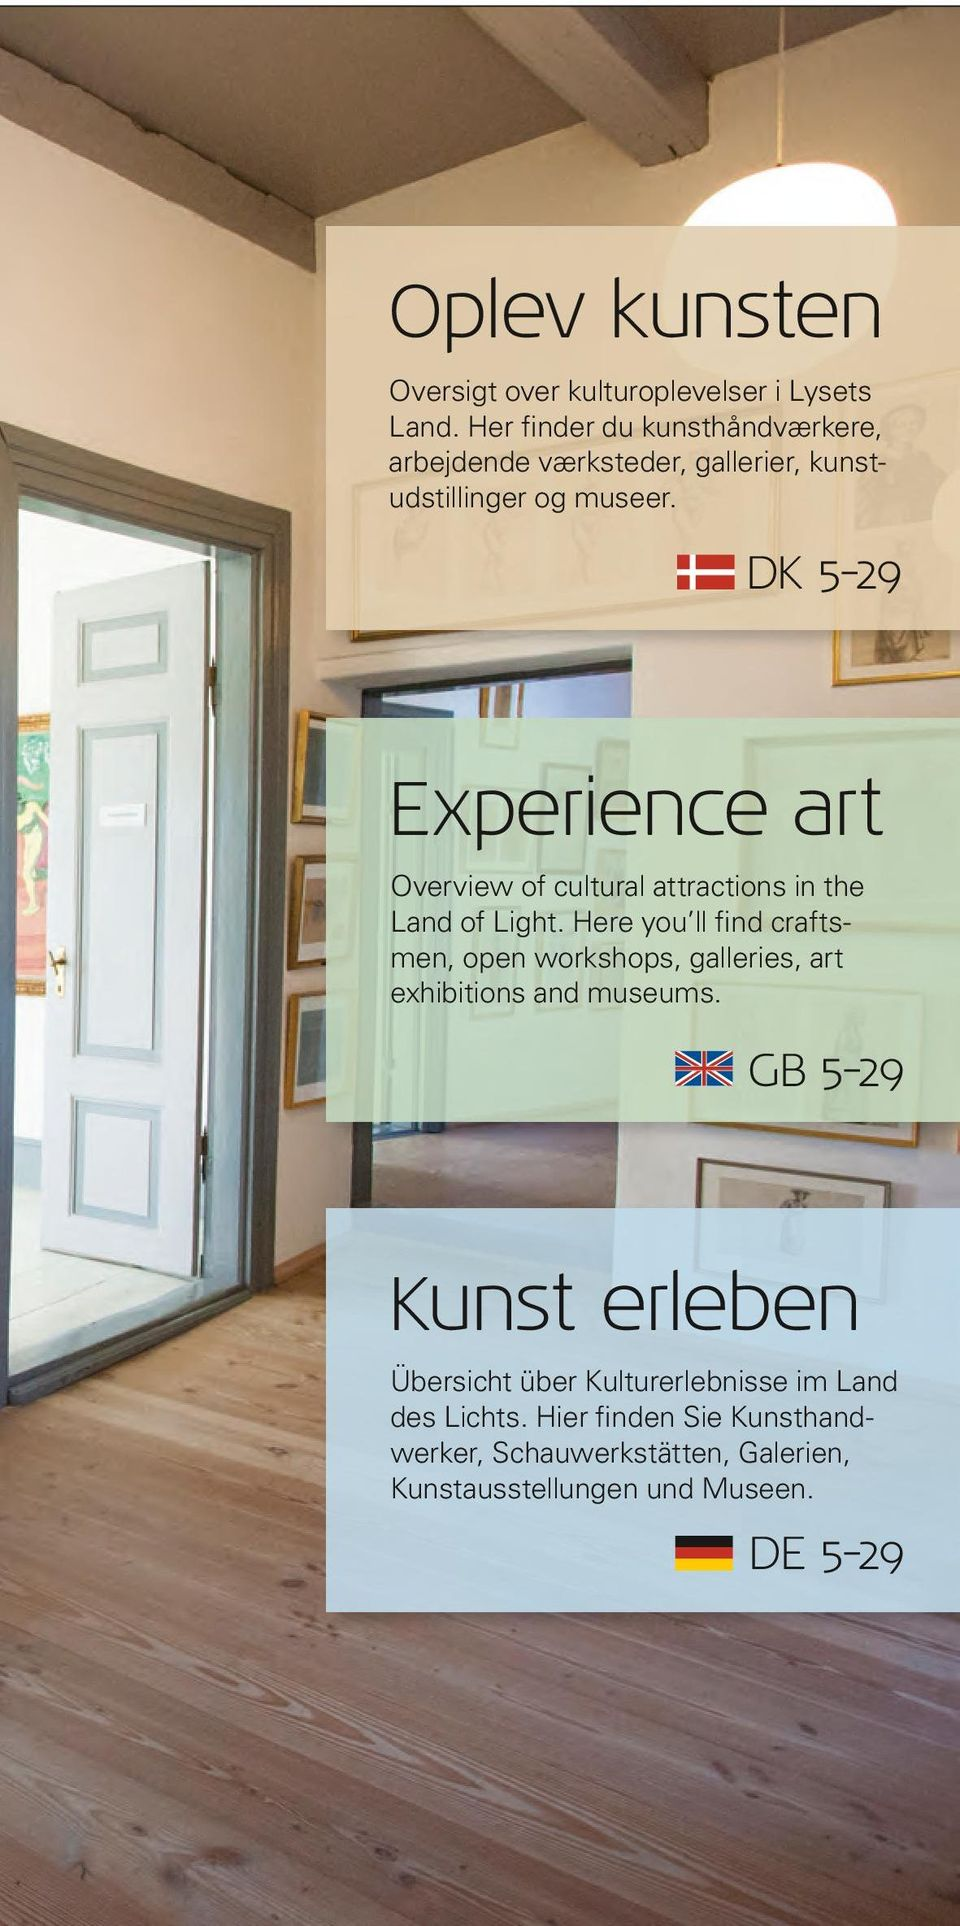 DK 5-29 Experience art Overview of cultural attractions in the Land of Light.